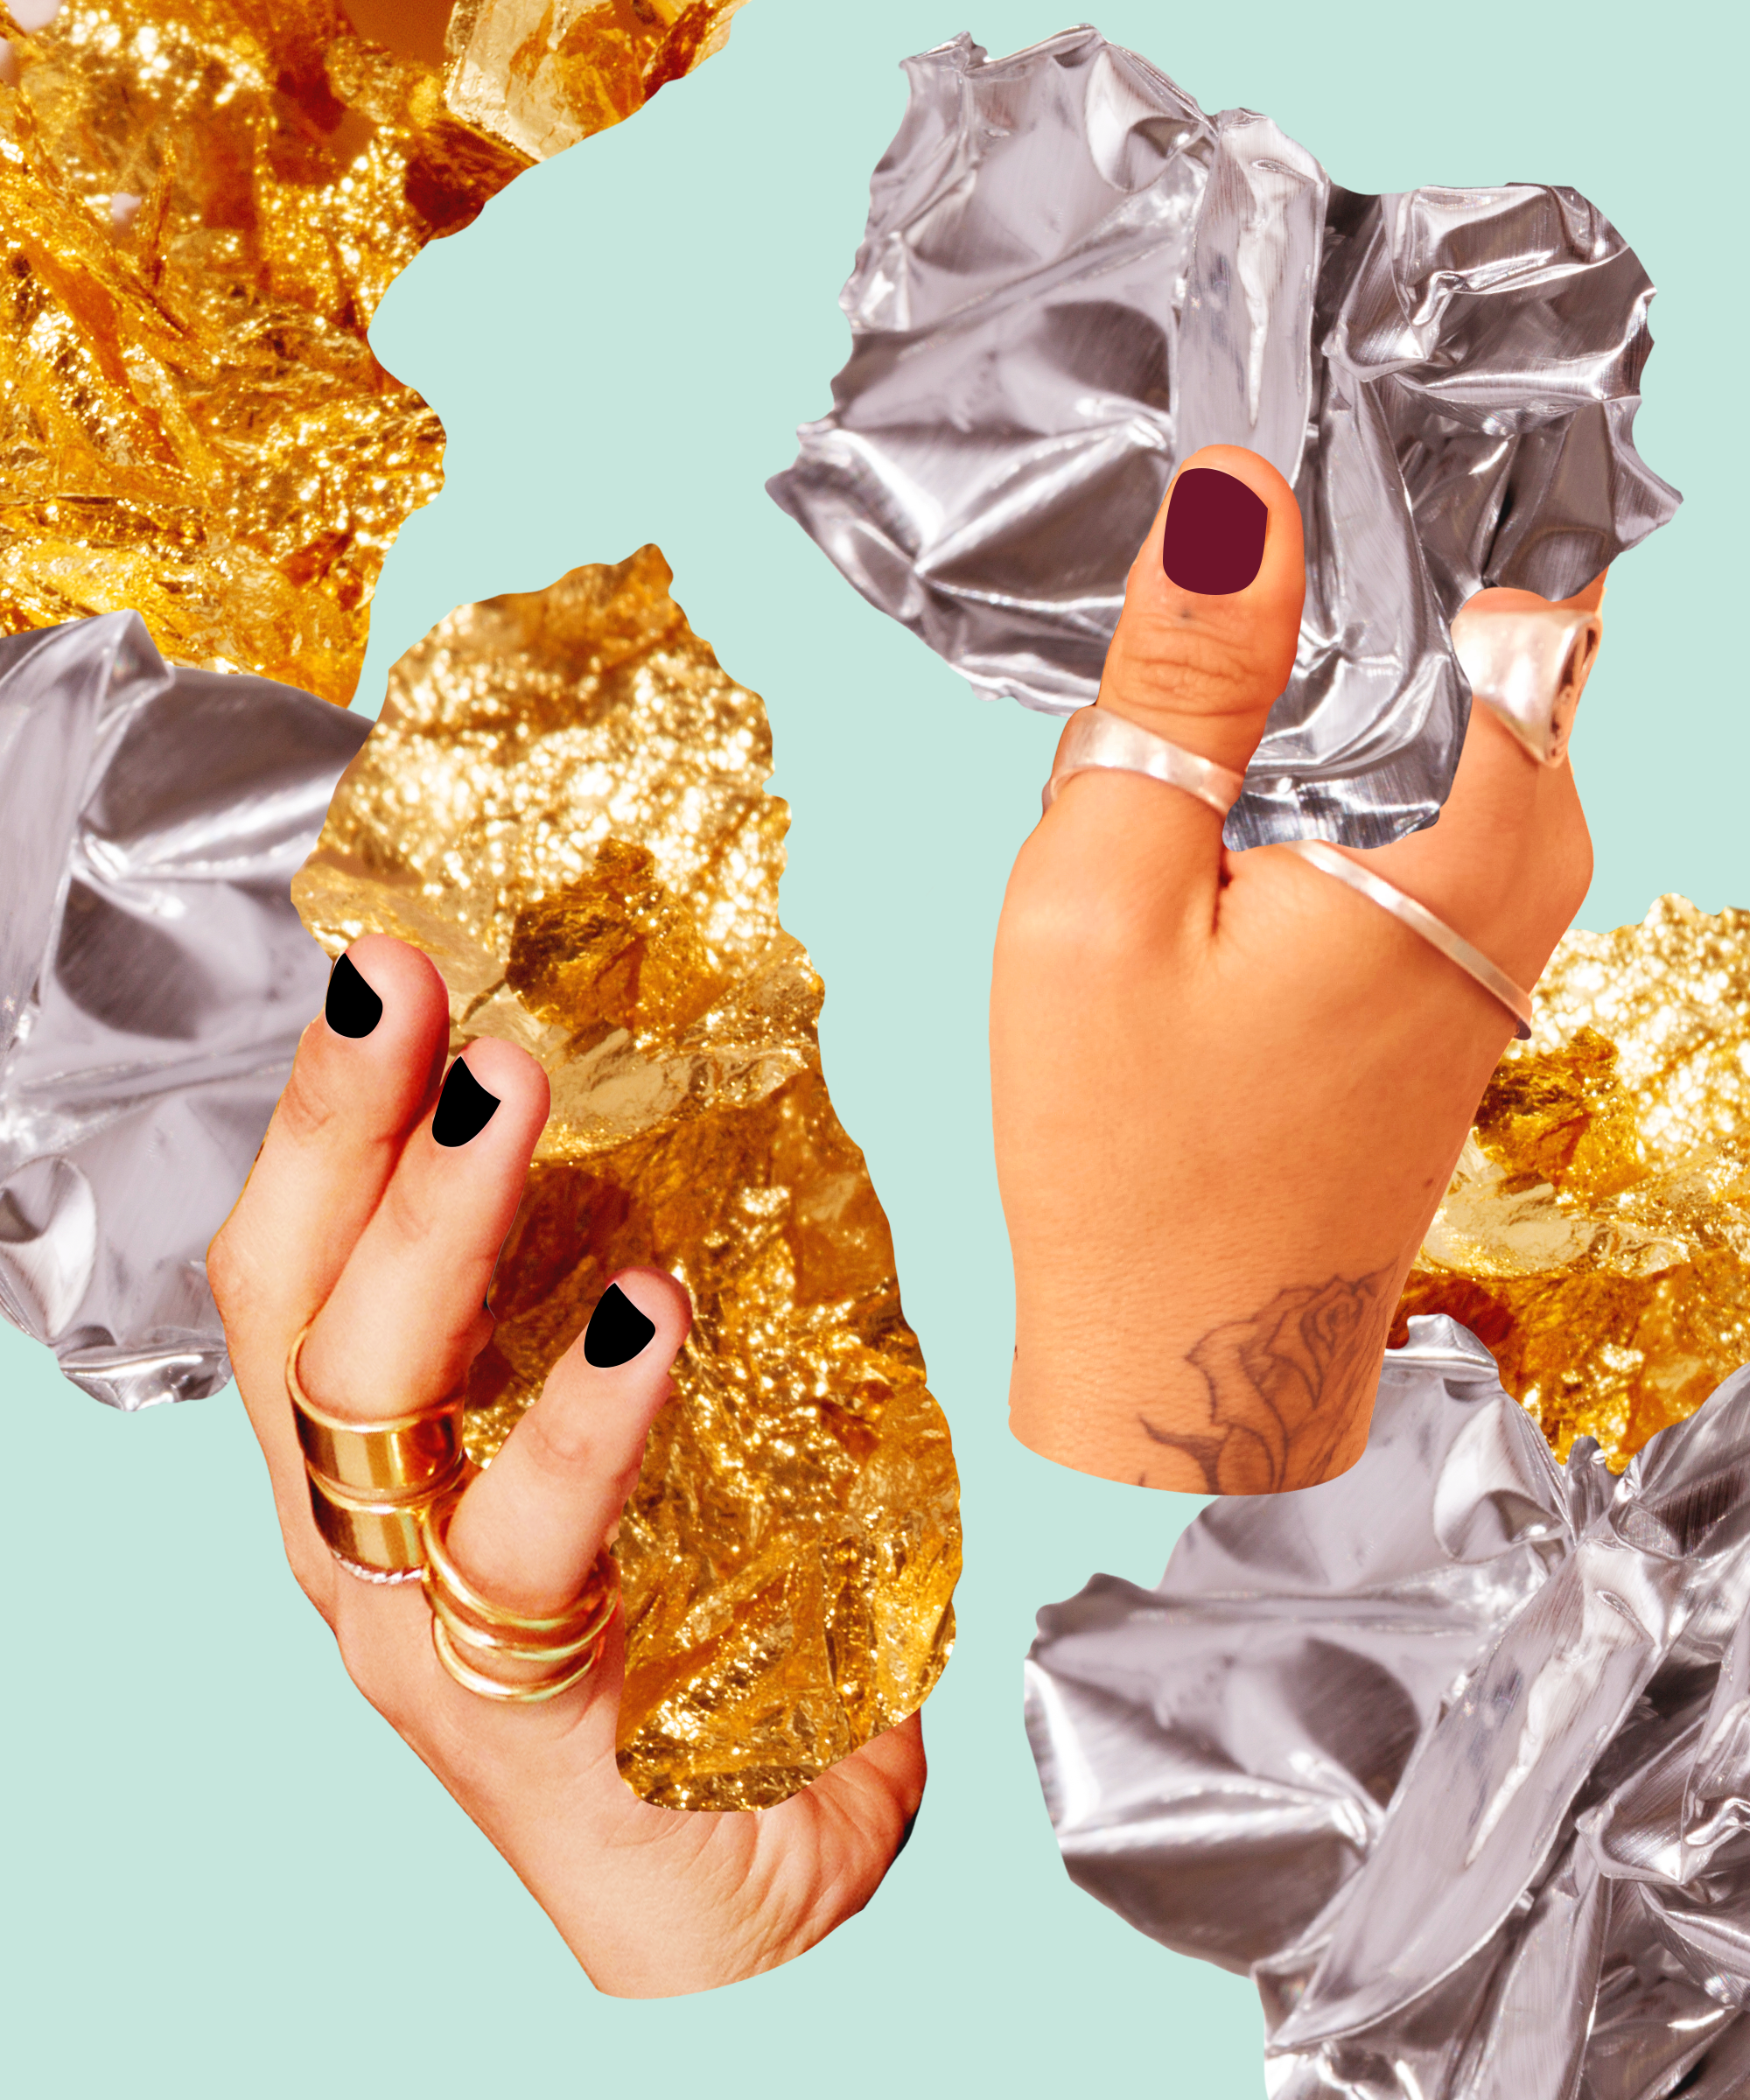 What Your Choice Of Gold Or Silver Jewelry Says About You